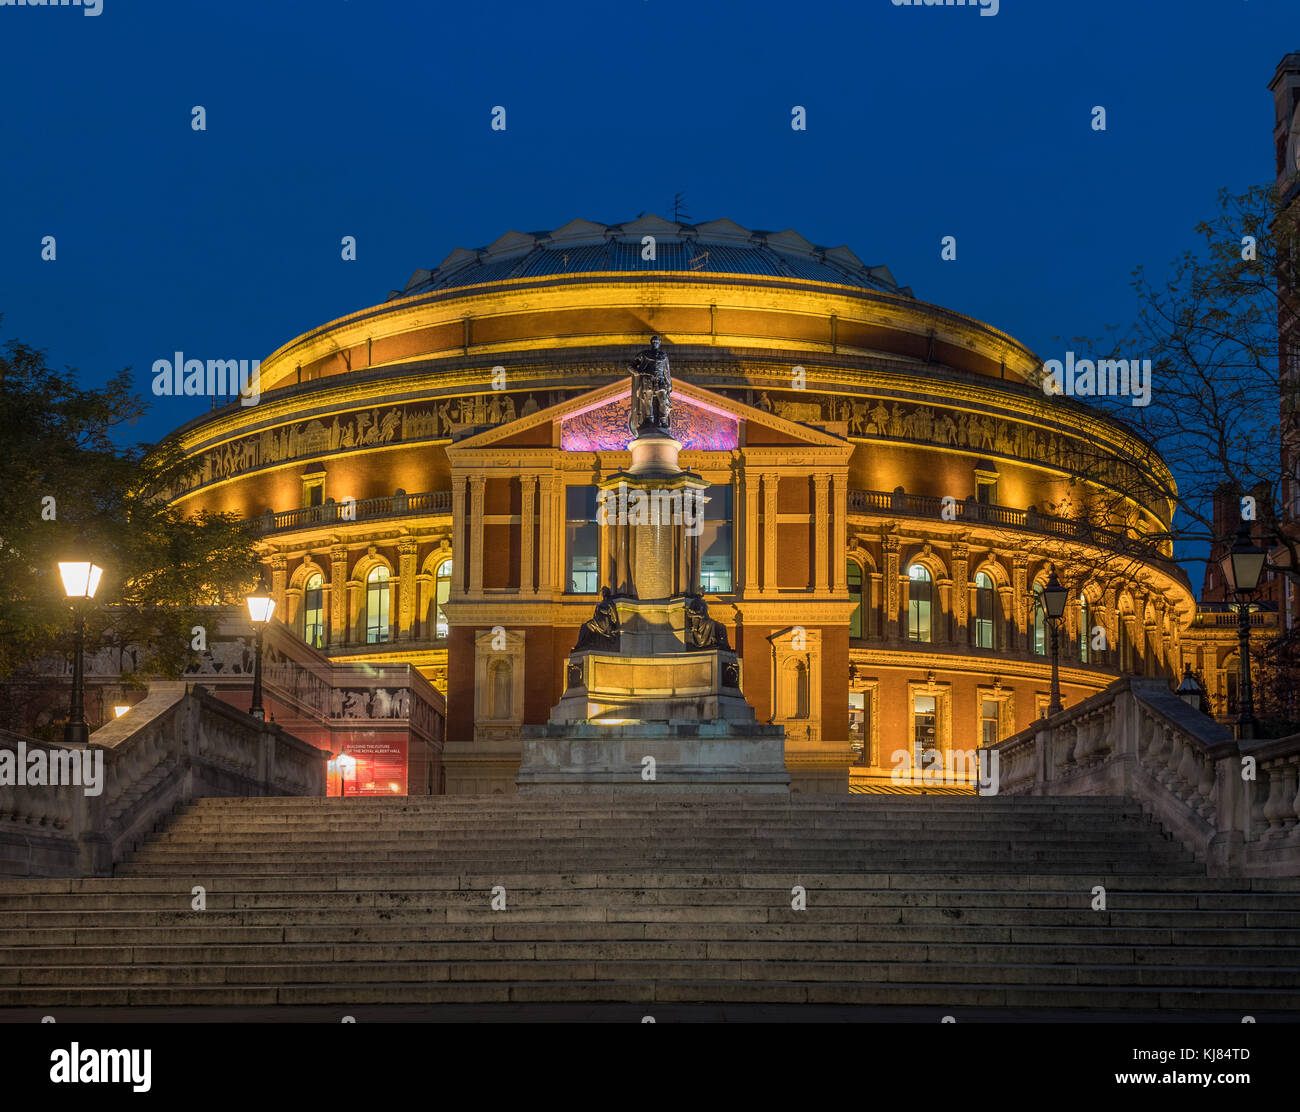 Queen Elizabeth II Diamond Jubilee Steps, Royal Albert Hall, London, UK at dusk - Stock Image